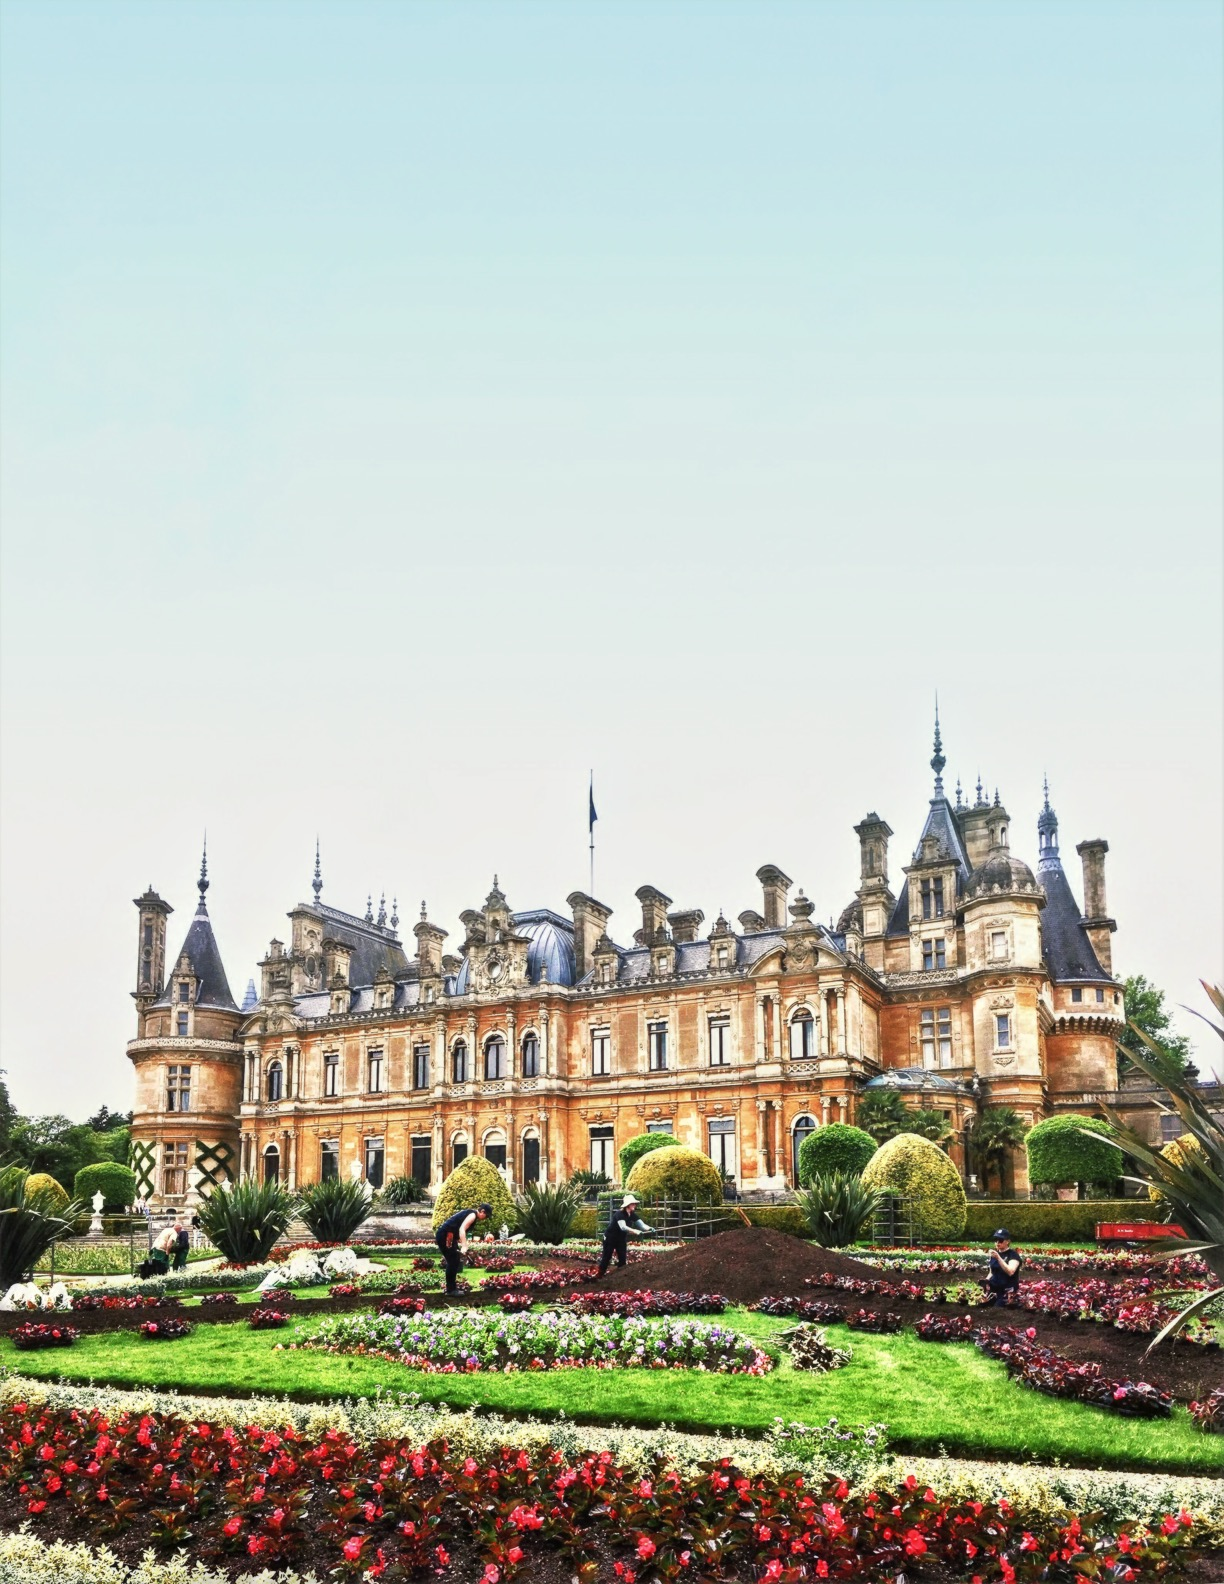 The Parterre at Waddesdon Manor has 50,000 plants, and the bedding is usually changed twice a year, in spring and summer. © Eileen Hsieh / Follow That Bug